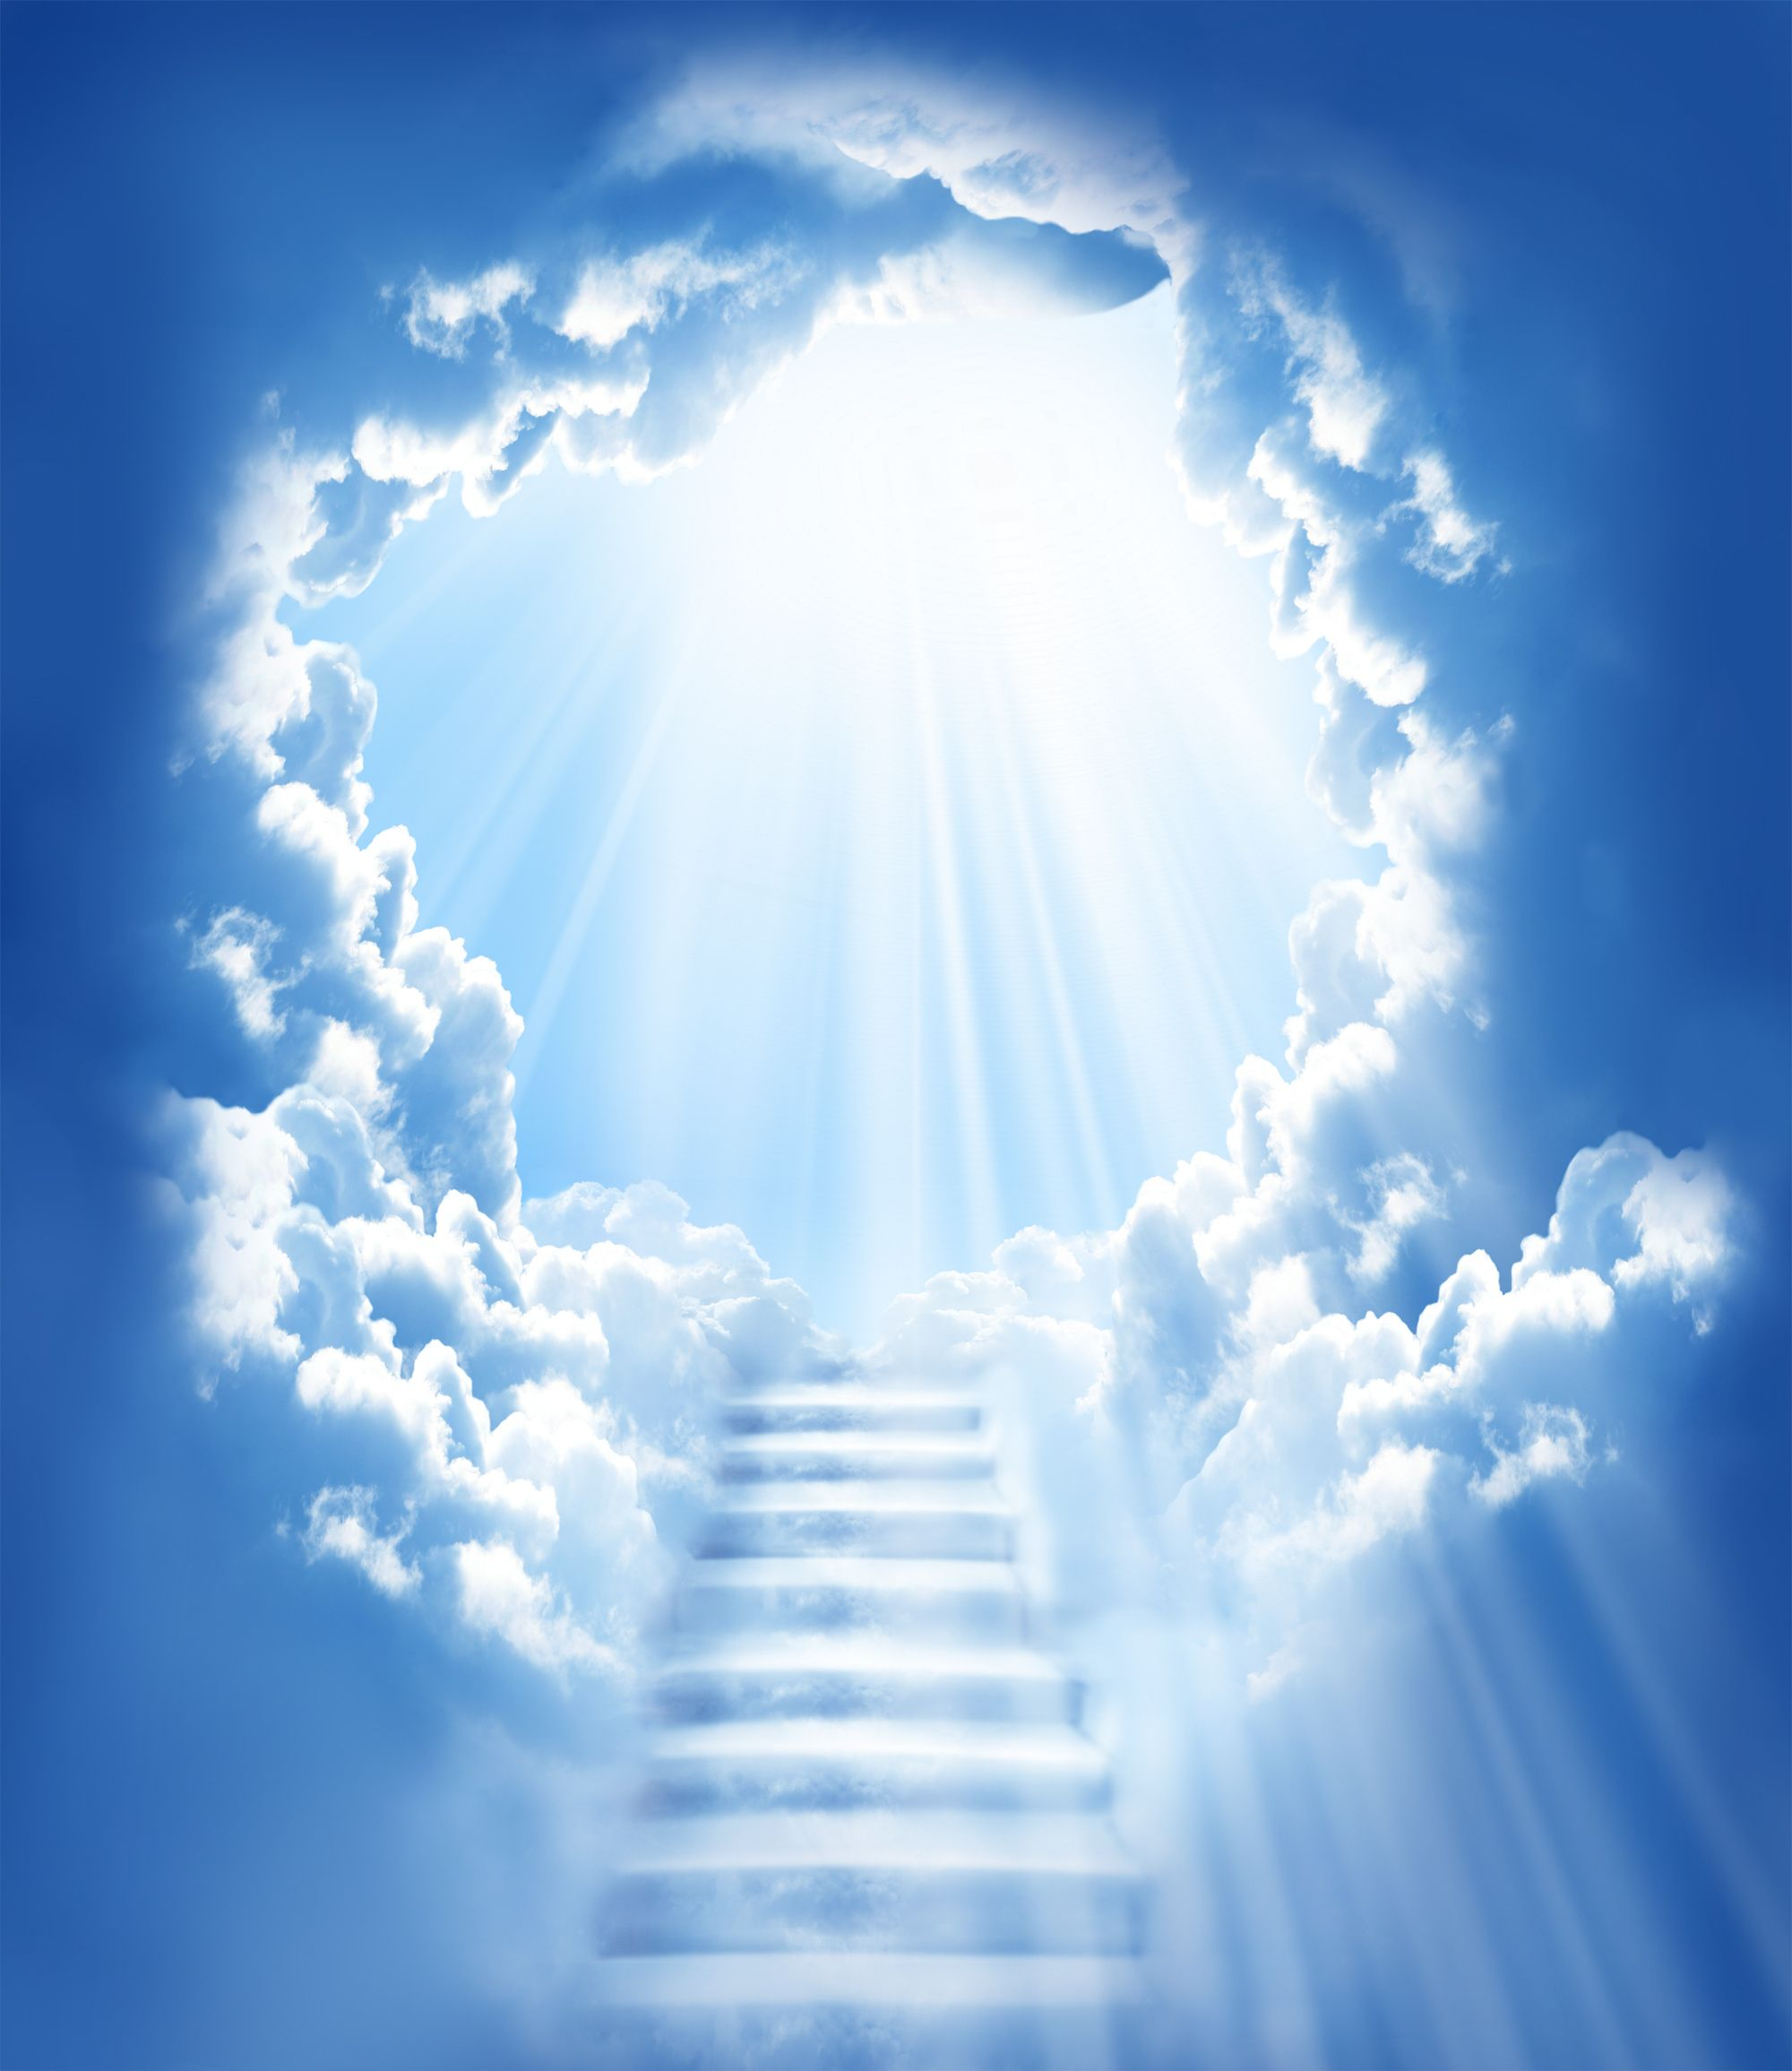 Heaven clipart peaceful. To my angel up